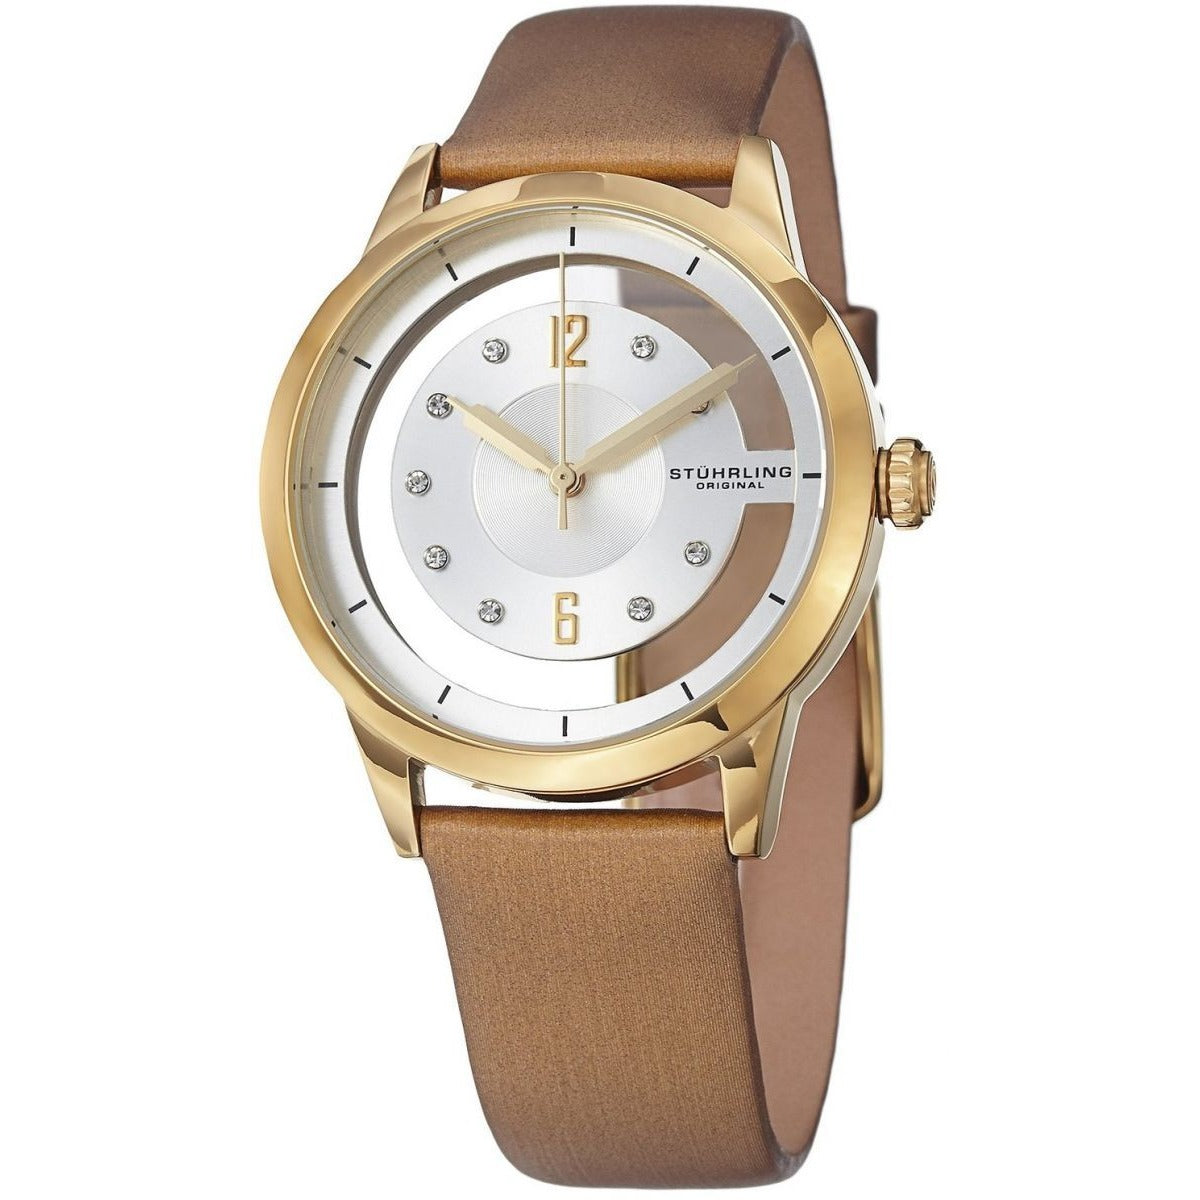 Stuhrling 946L.03 For Women Analog, Casual Watch